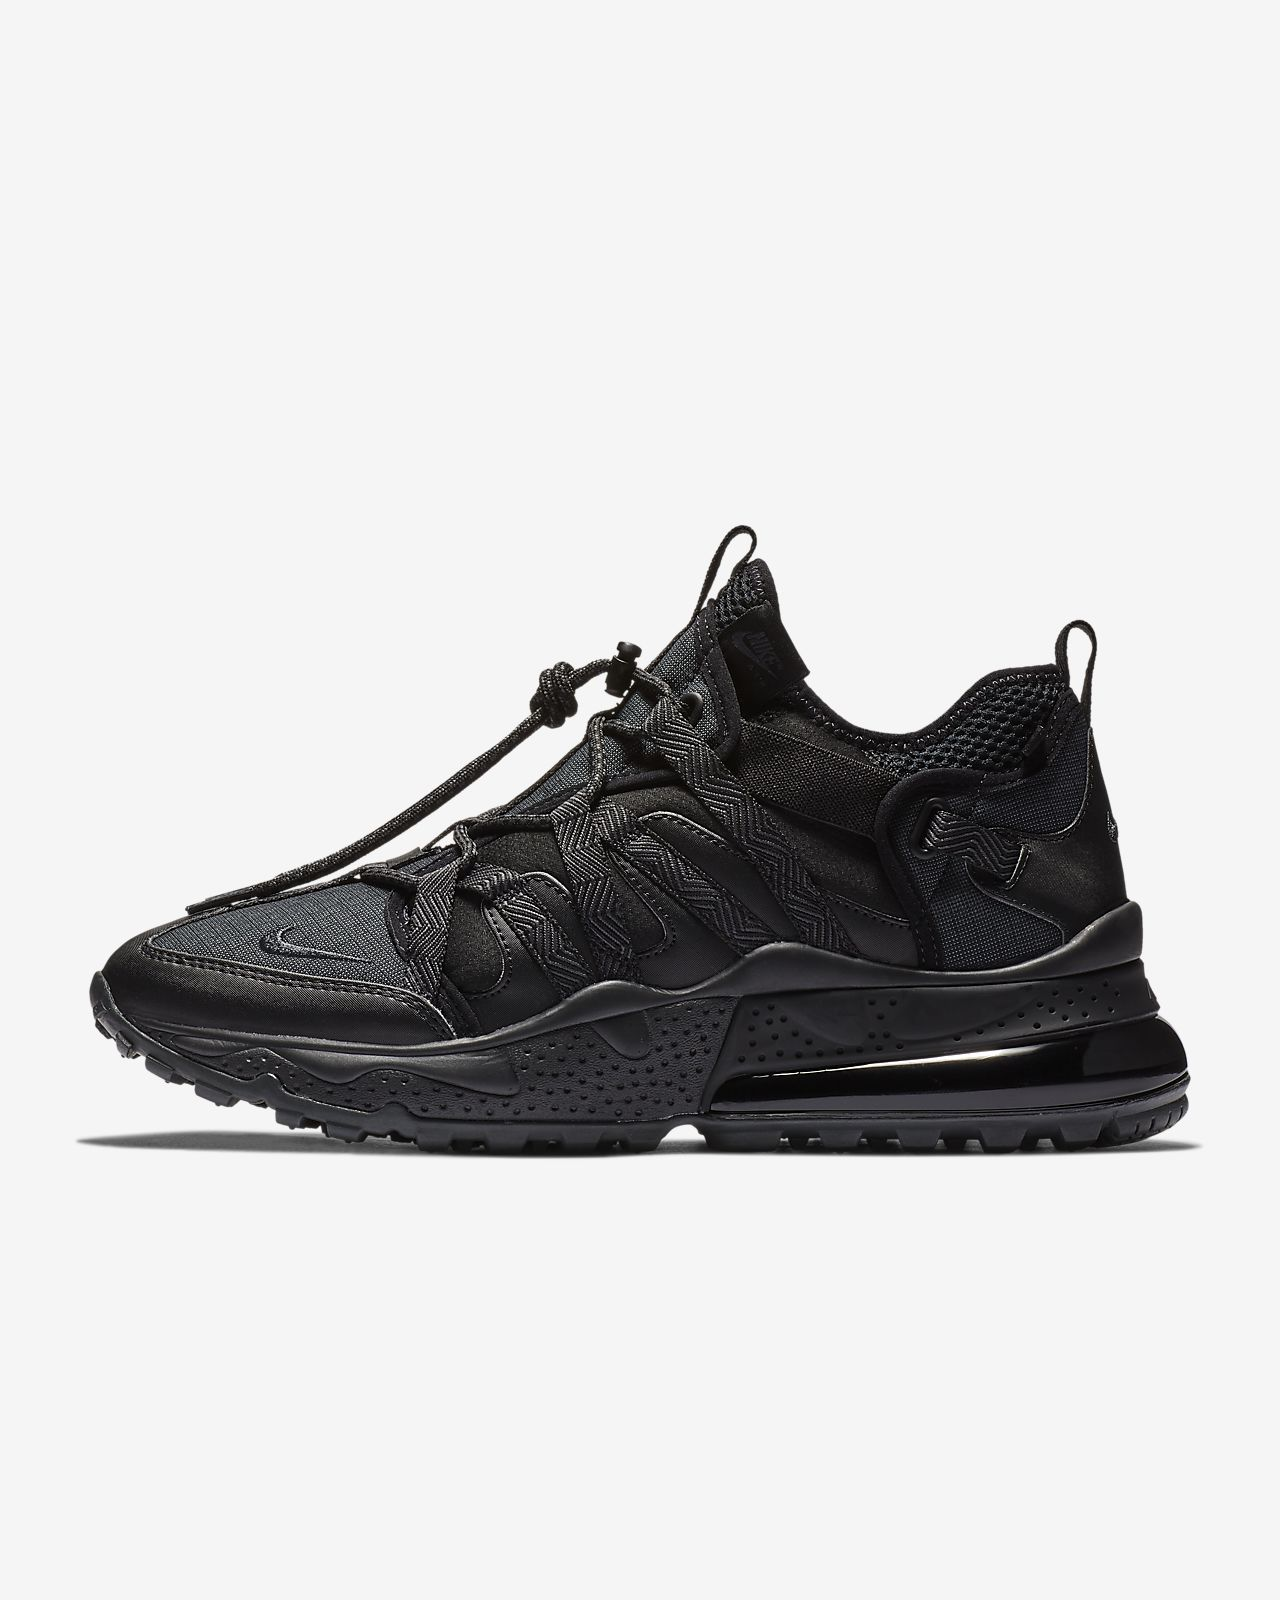 check out 3ca28 3dcef Nike Air Max 270 Bowfin Men's Shoe. Nike.com